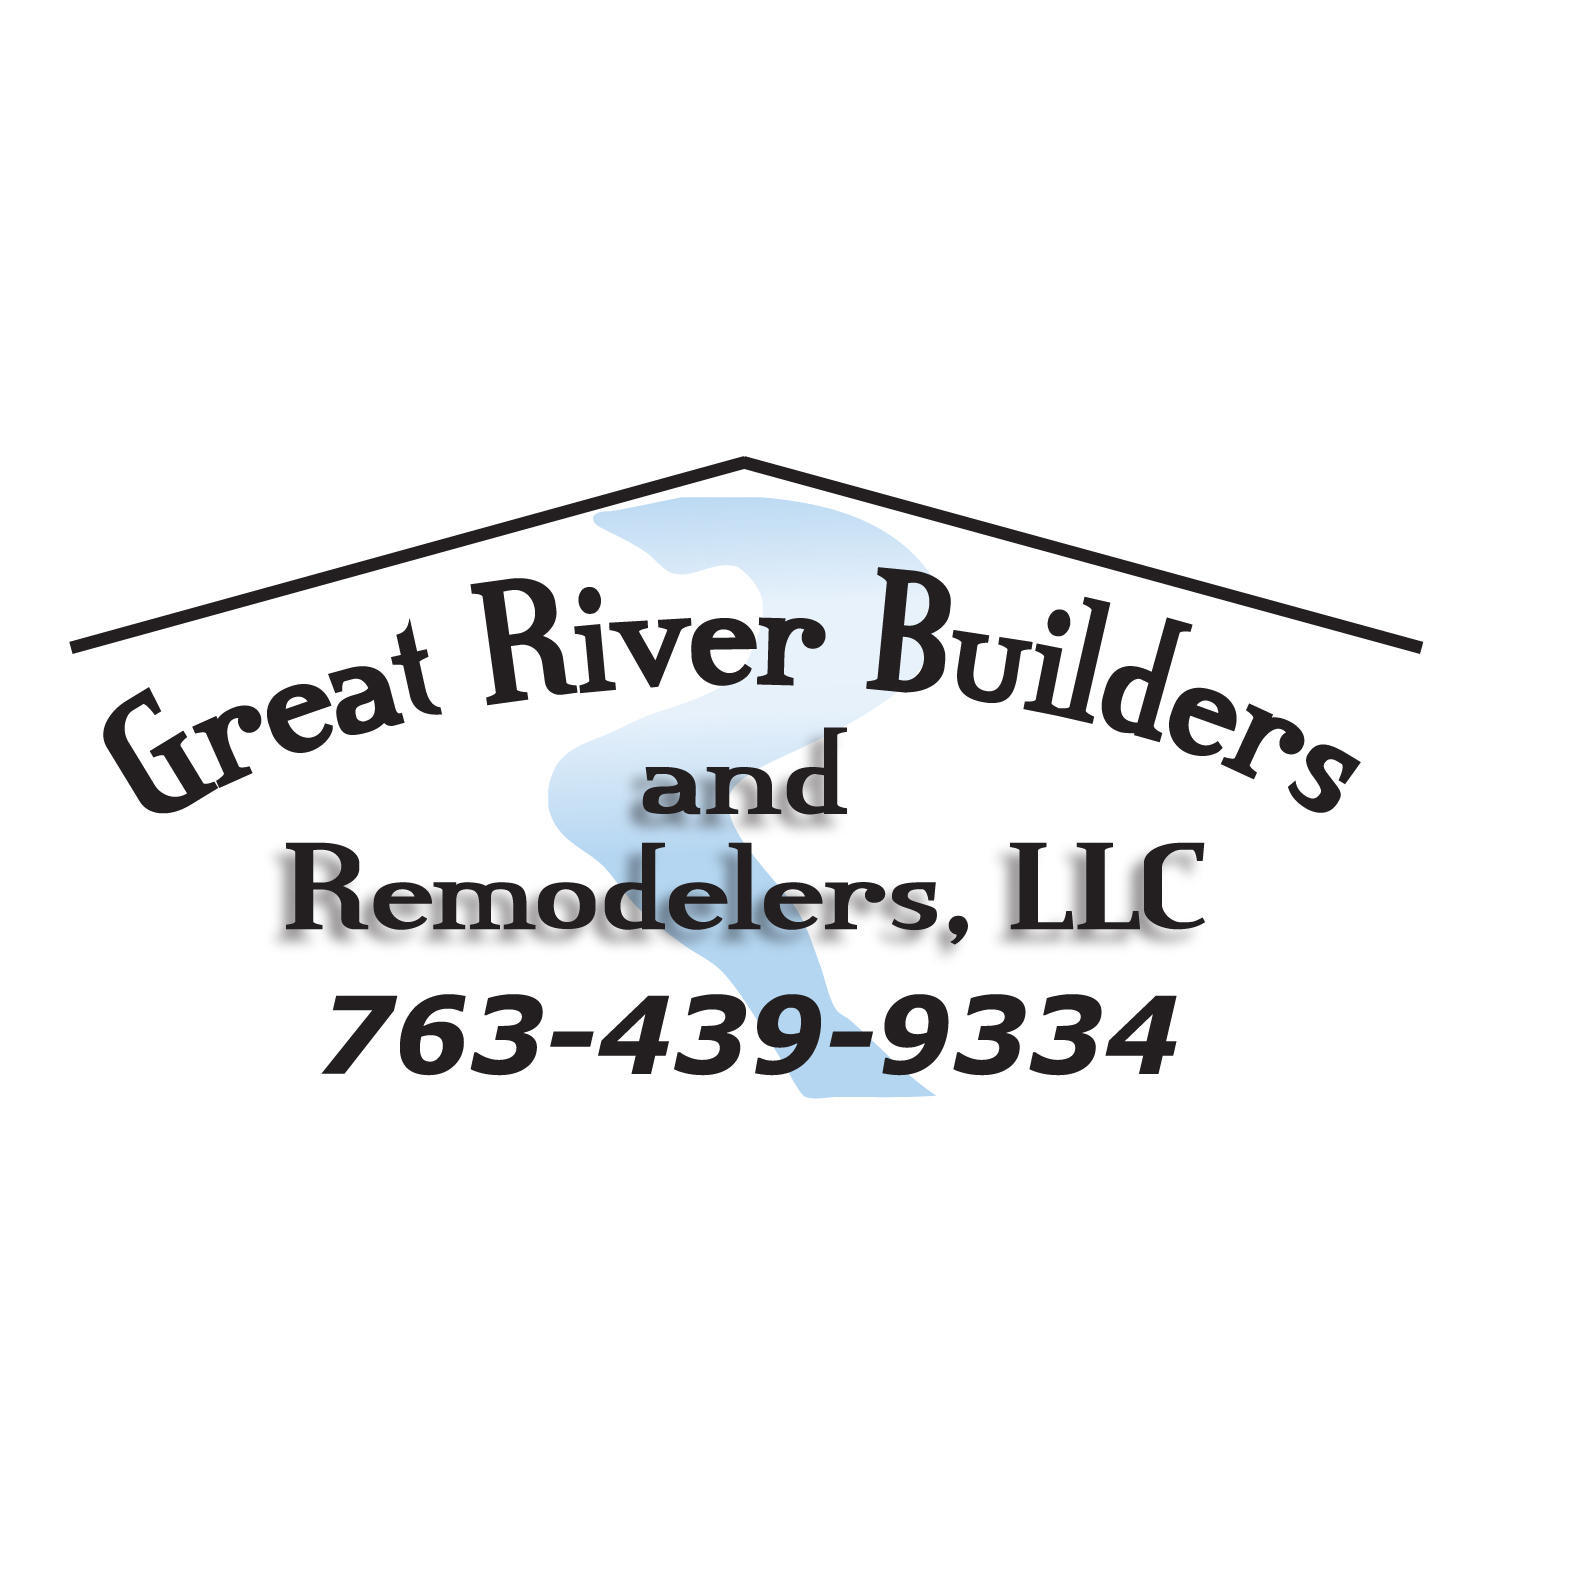 Great River Builders  and  Remodelers, LLC